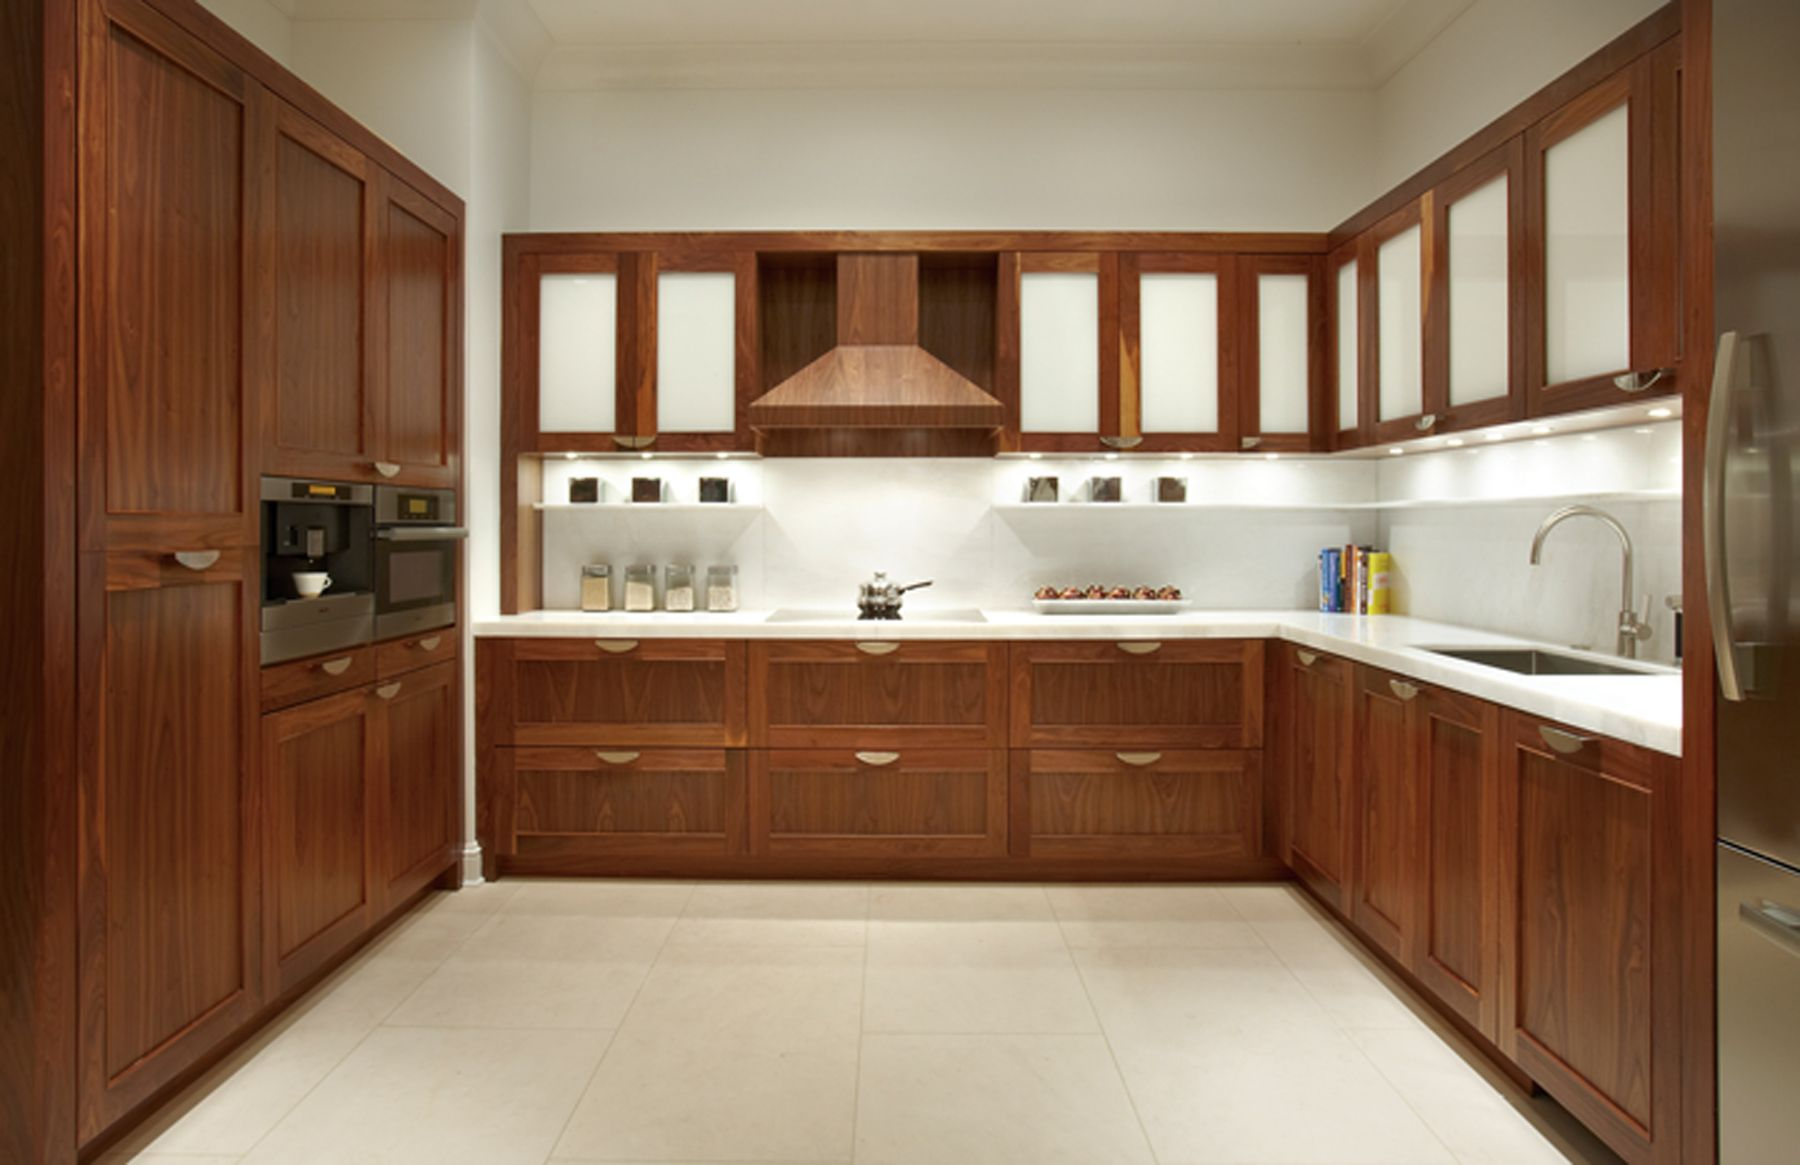 Kitchen Cupboard Designs Images The Cabinets Are Found Above And Below The Countertops Across